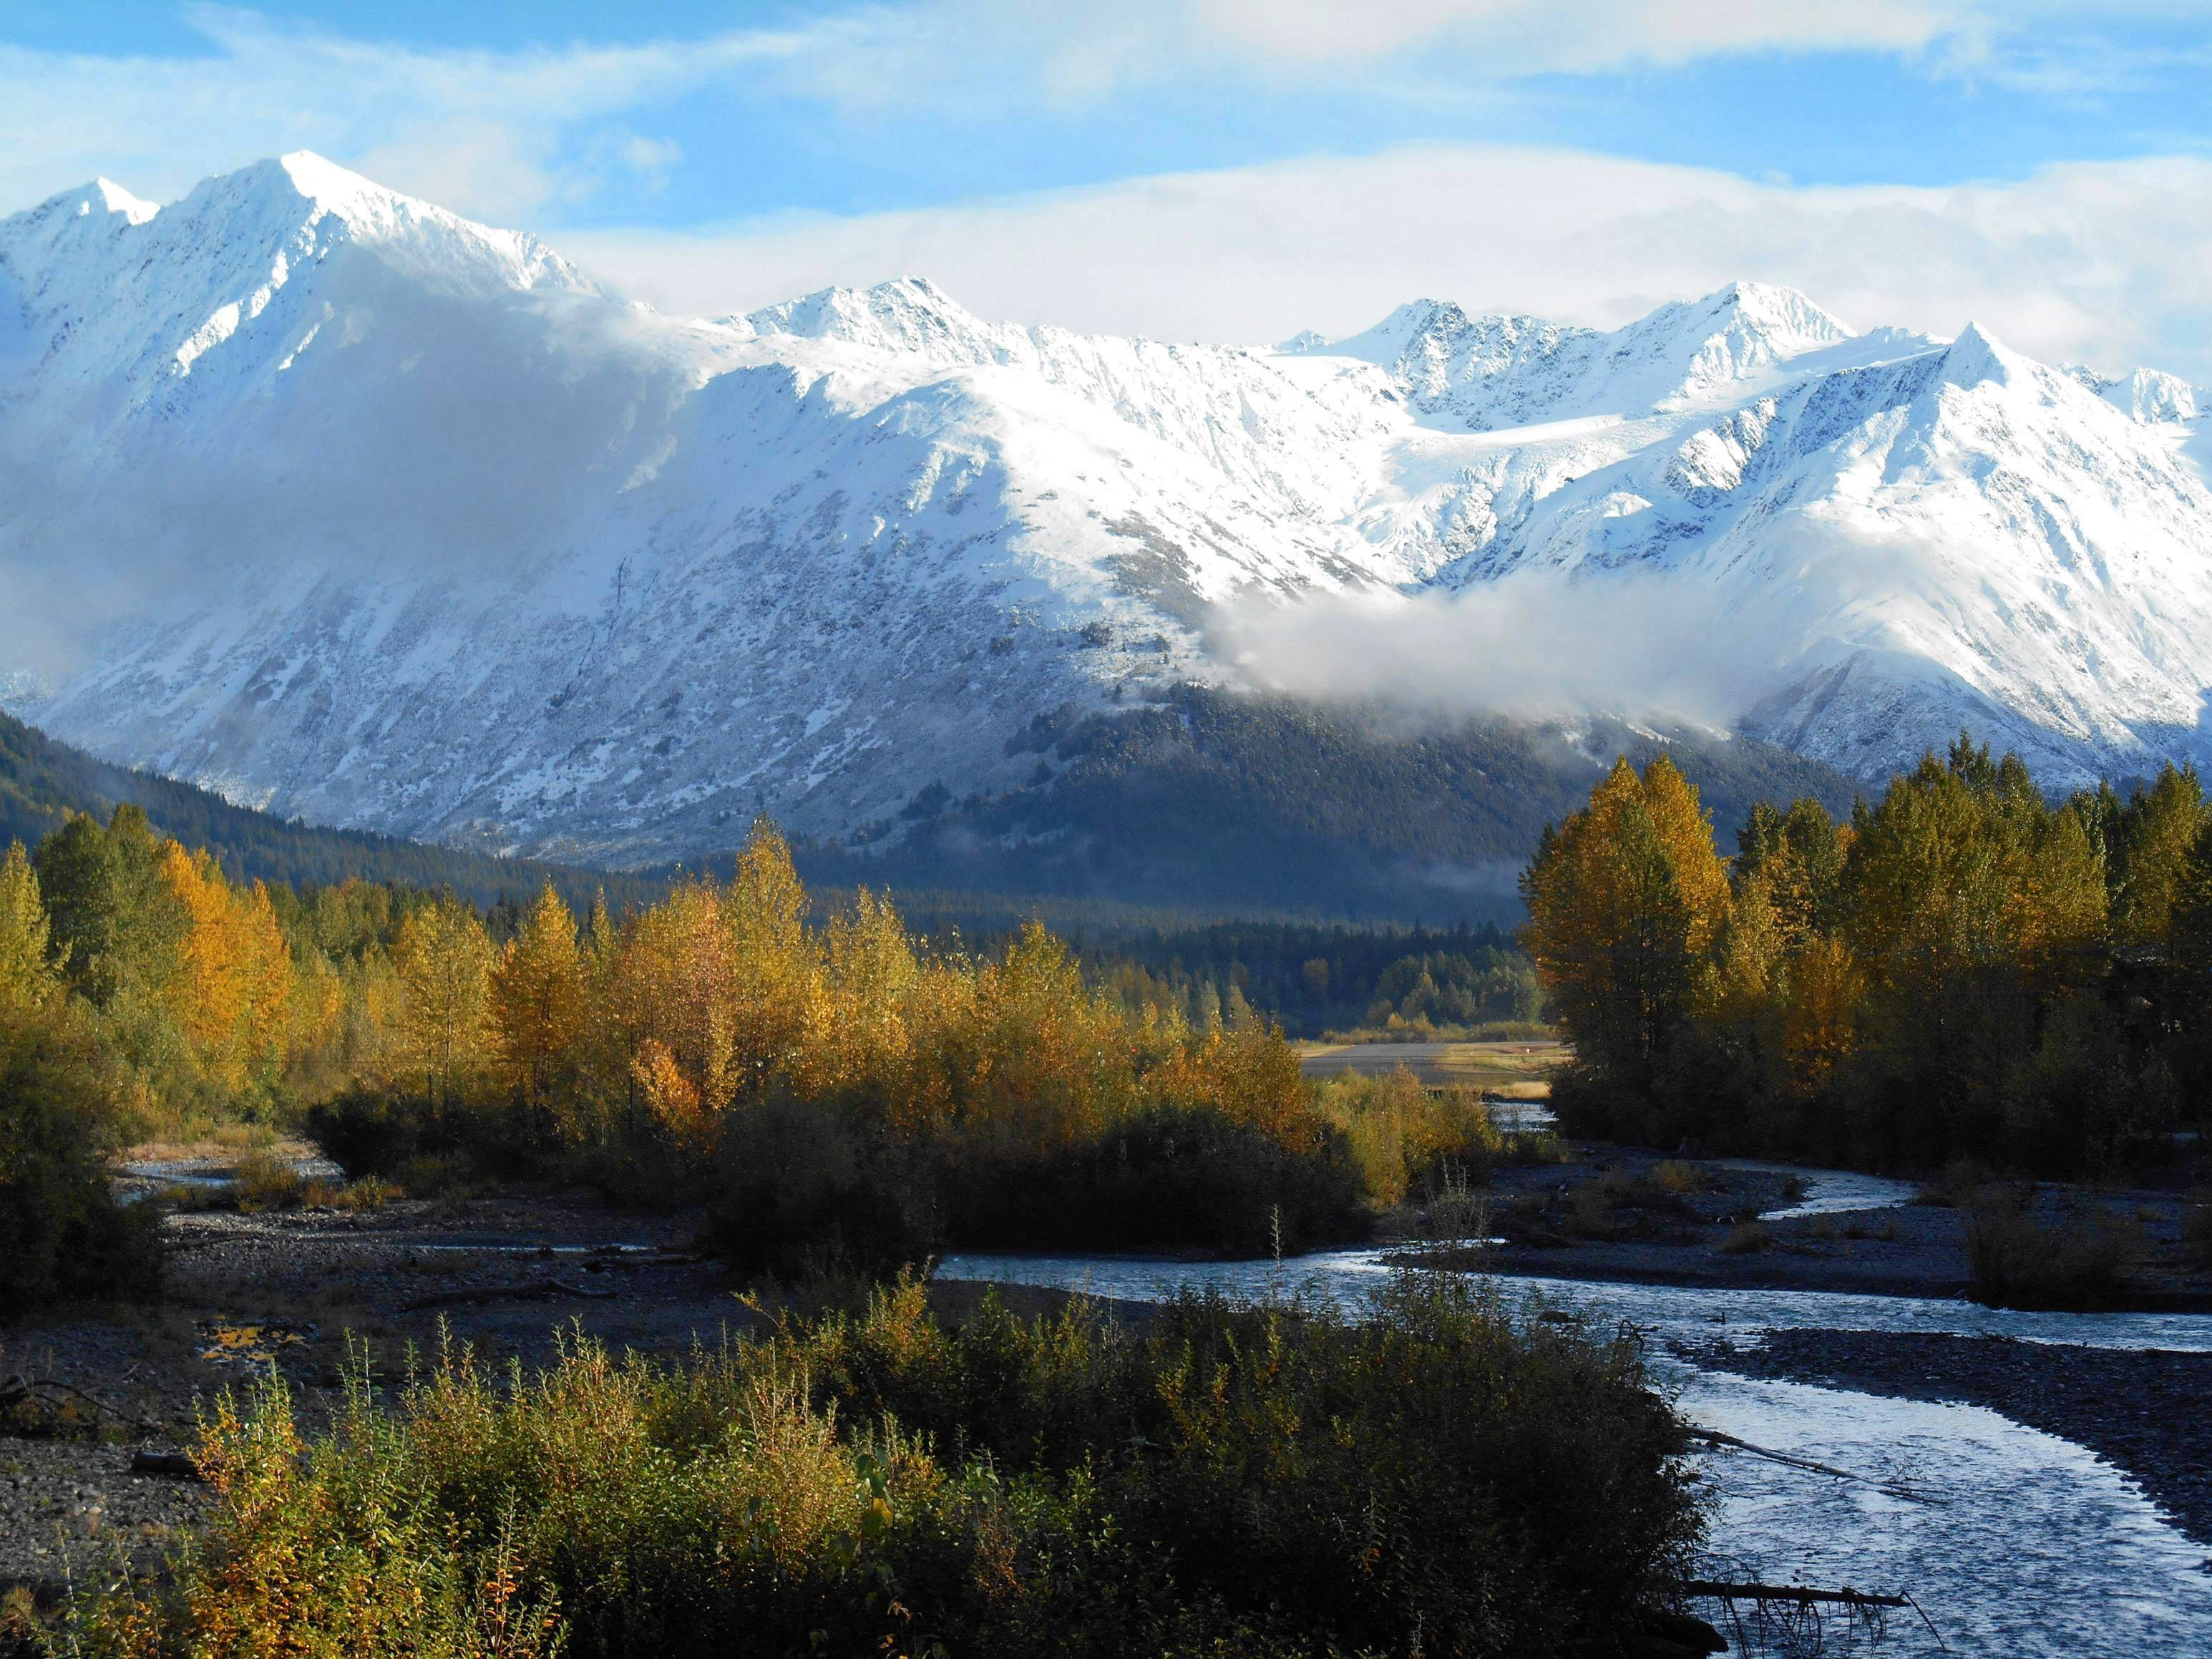 Fall at Mount Alyeska resort outside Anchorage in Alaska on Sept. 18.